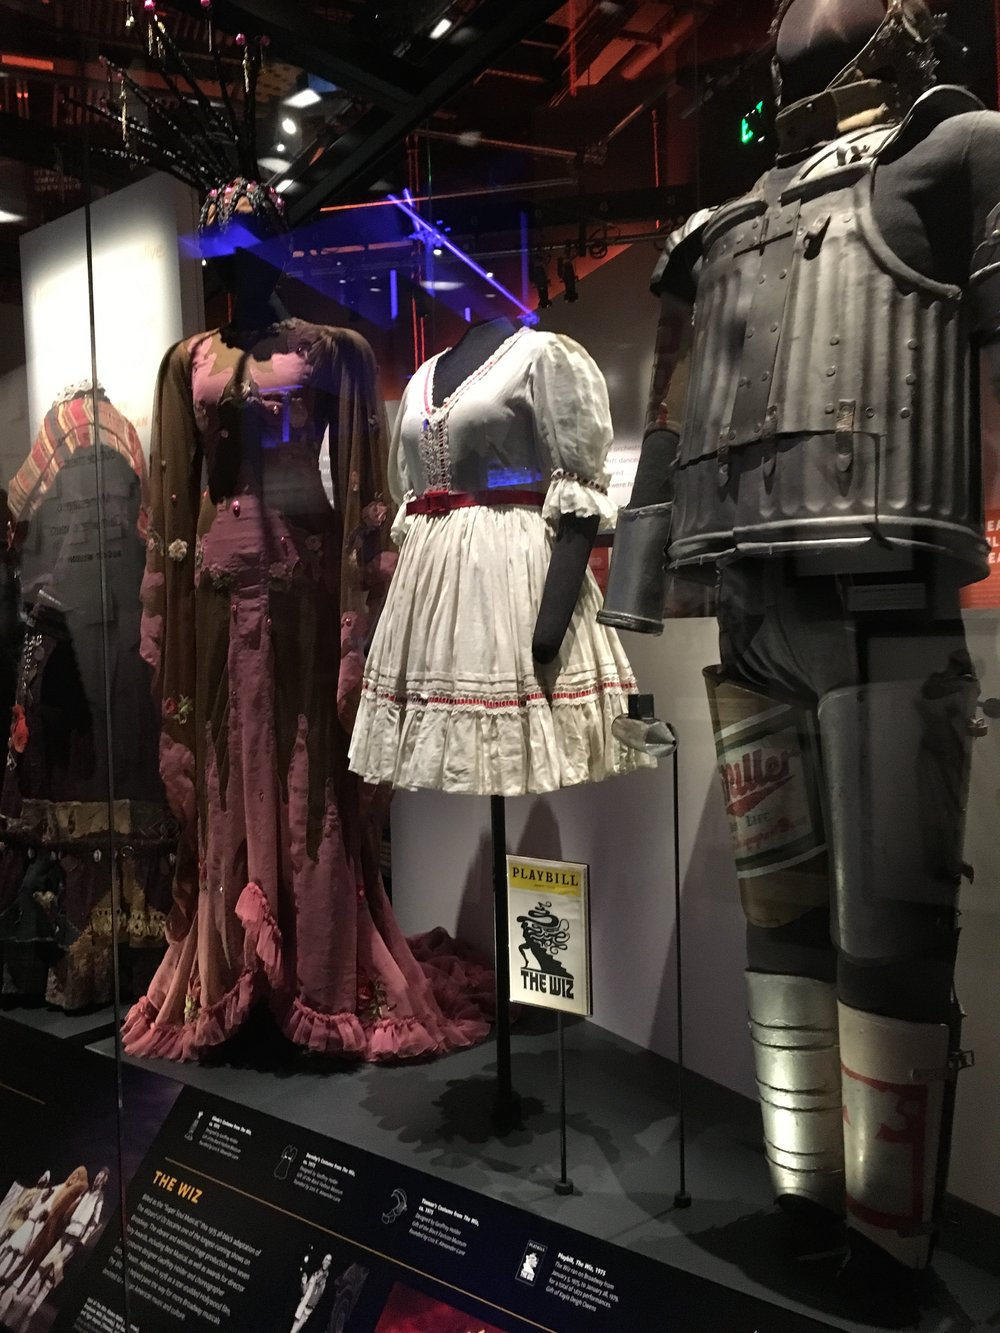 Broadway section of the top floor. Displays the costumes from the broadway play The Wiz